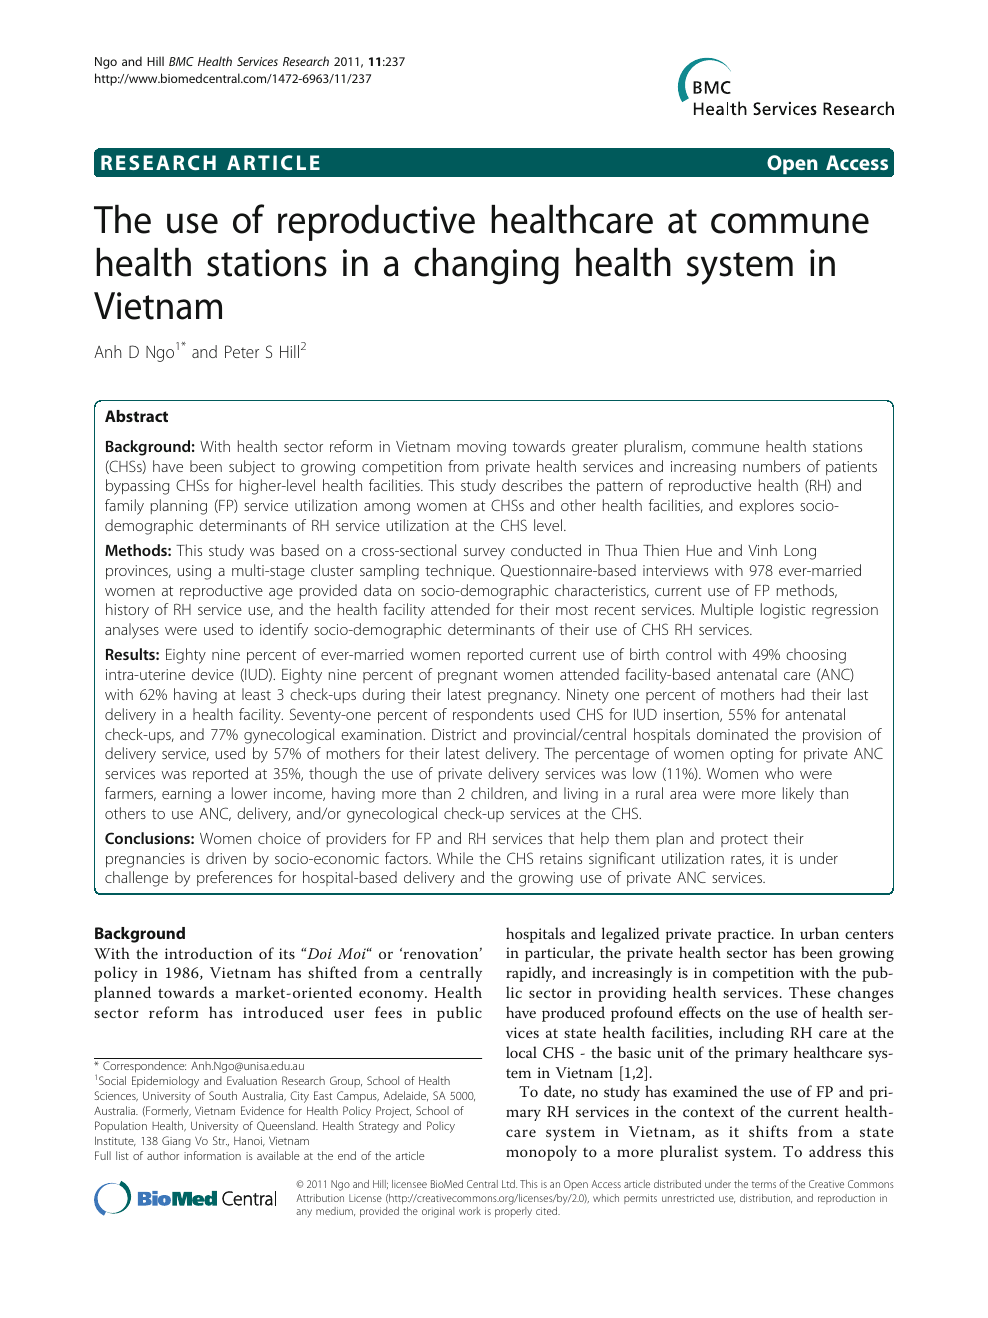 The use of reproductive healthcare at commune health